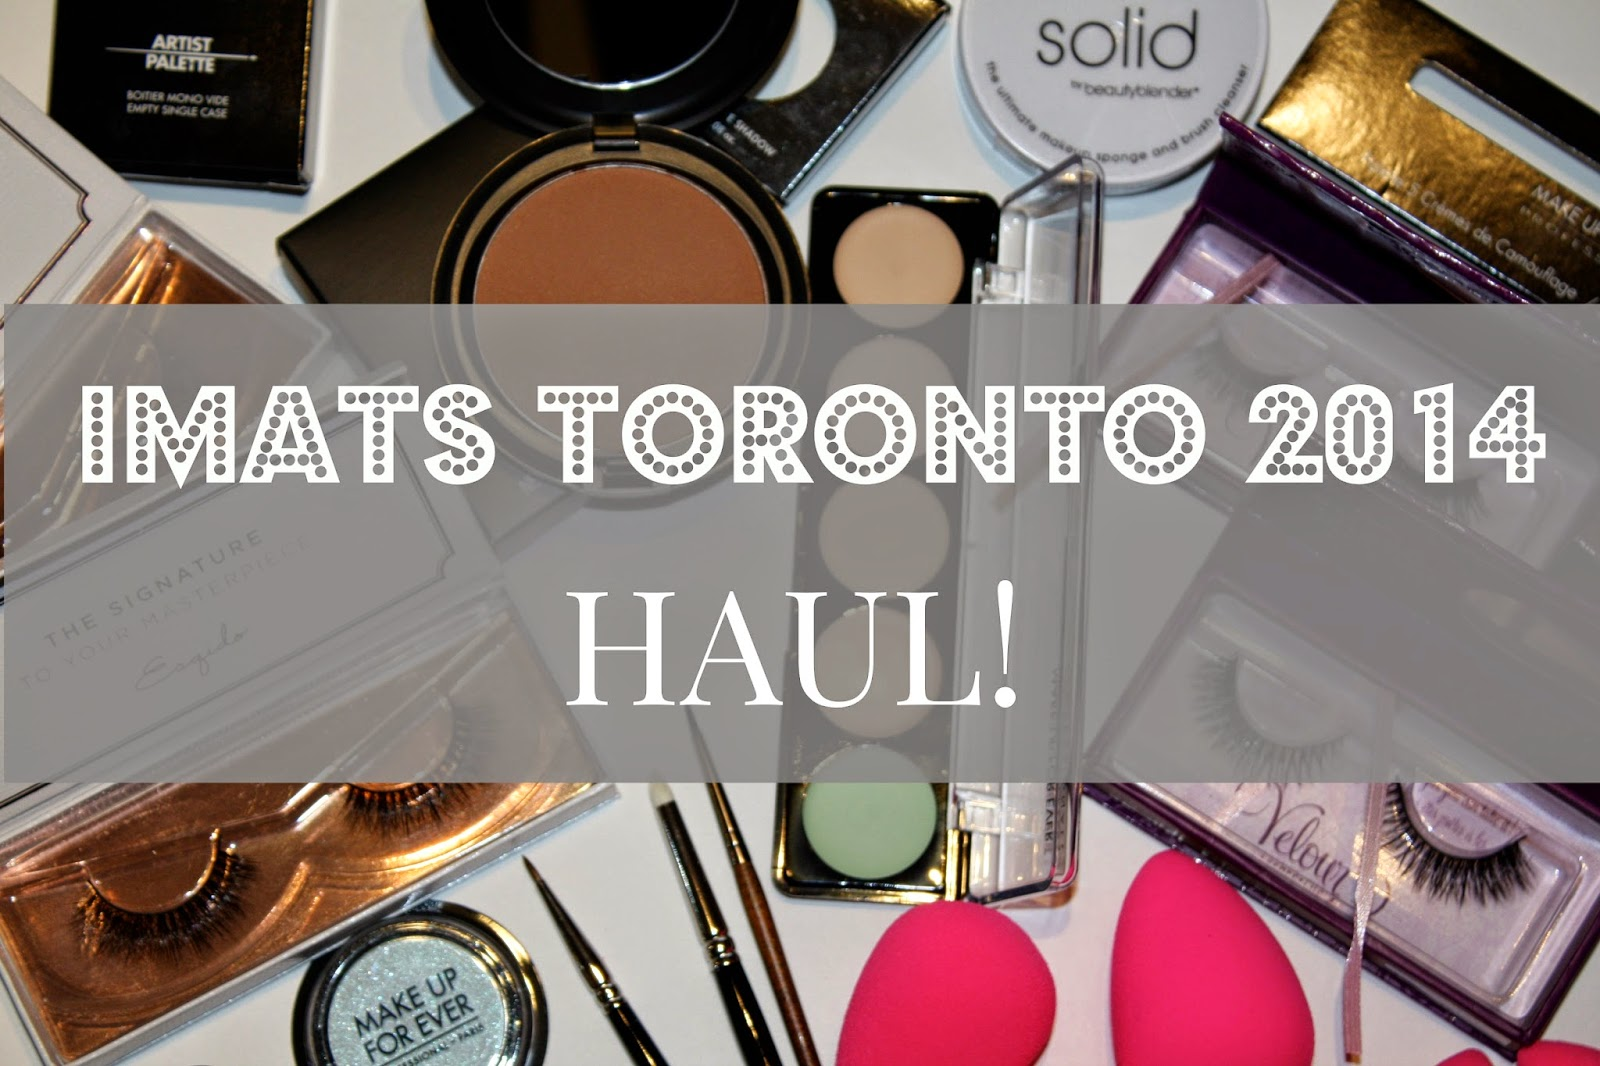 IMATS Toronto 2014 Review & Haul